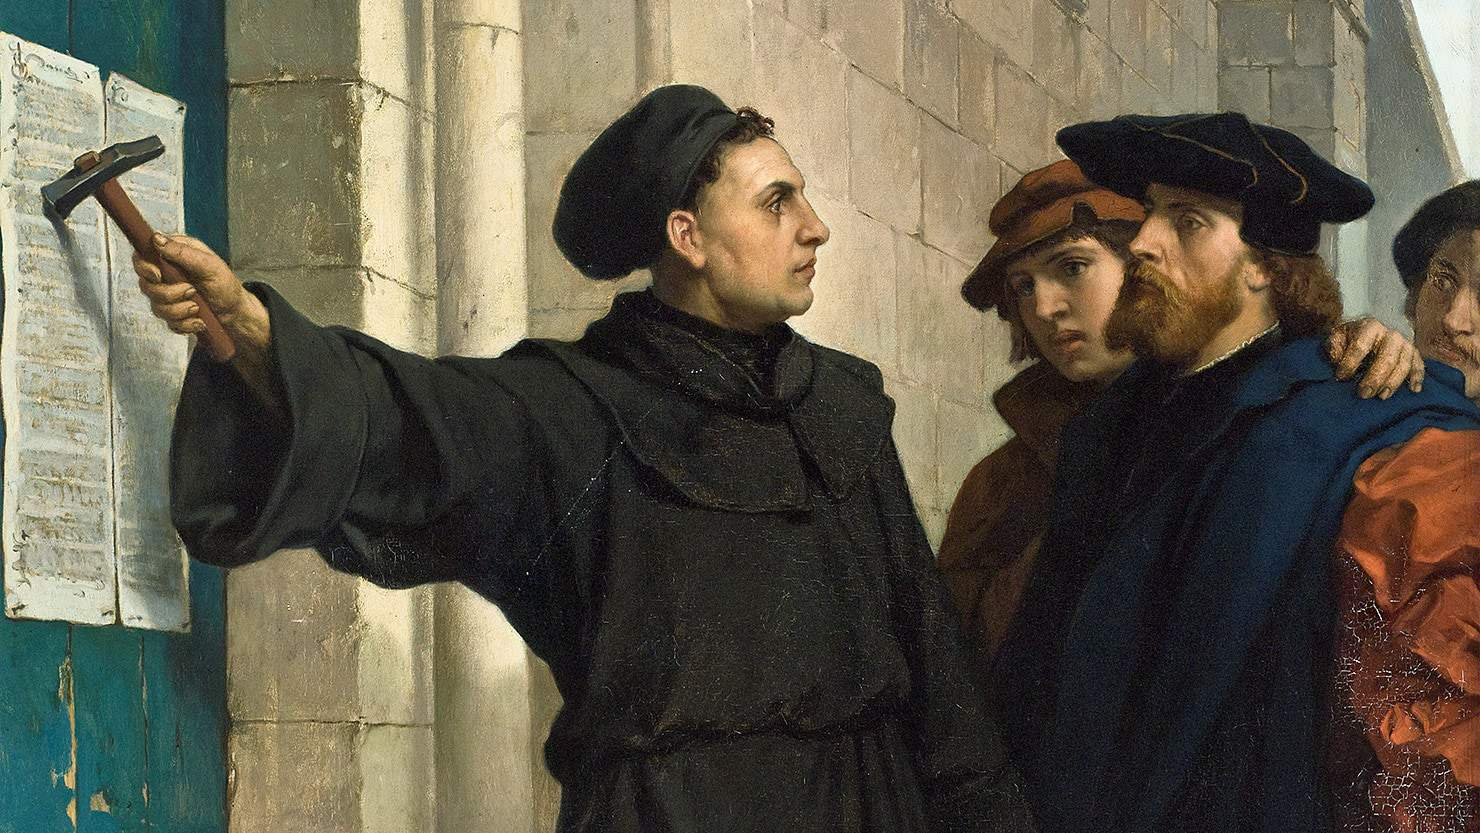 luther95theses2